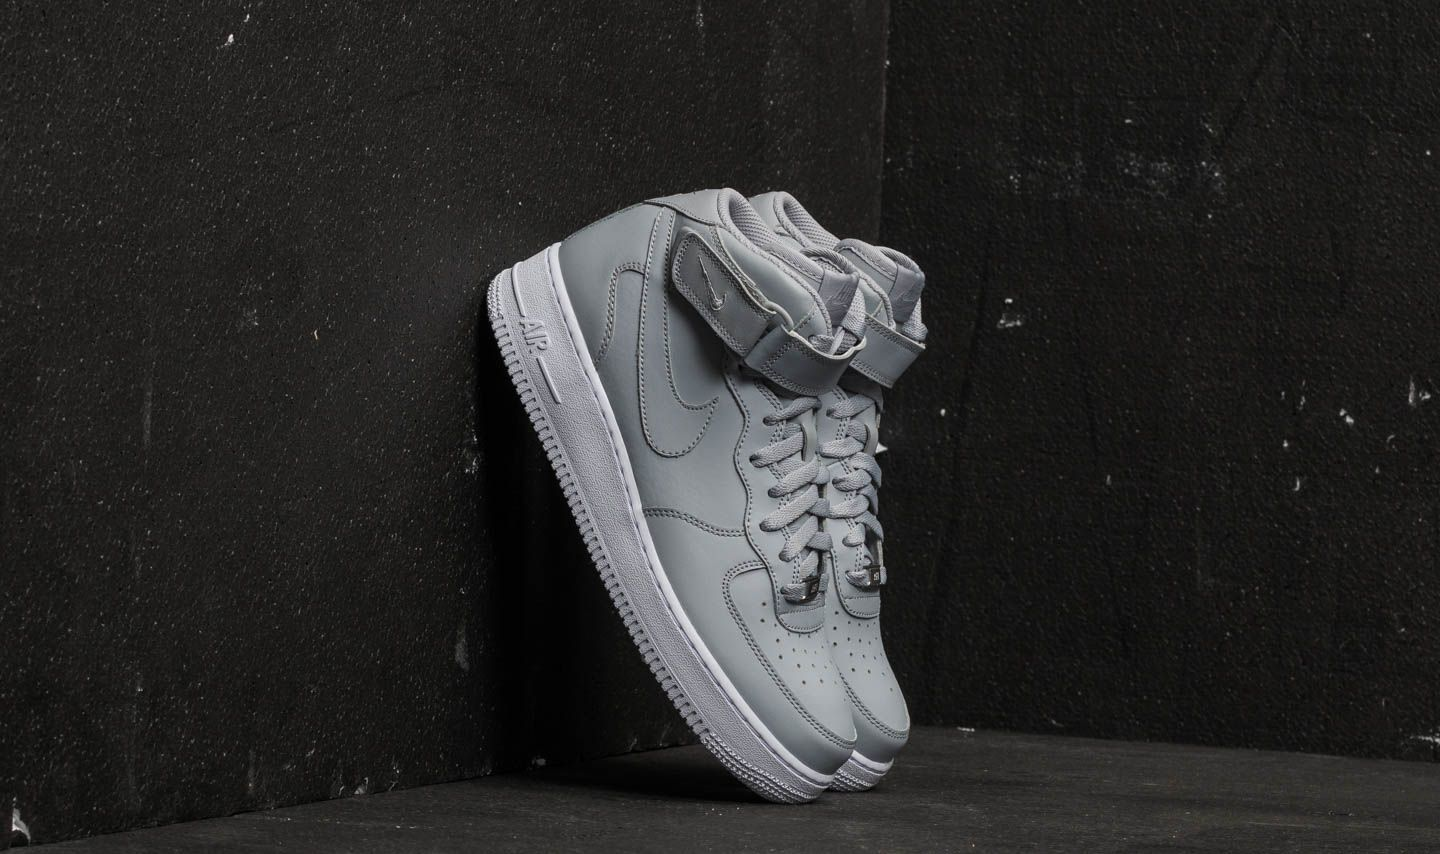 Force 1 '07 Wolf Grey Nike Air WhiteFootshop Mid A3L4Rj5